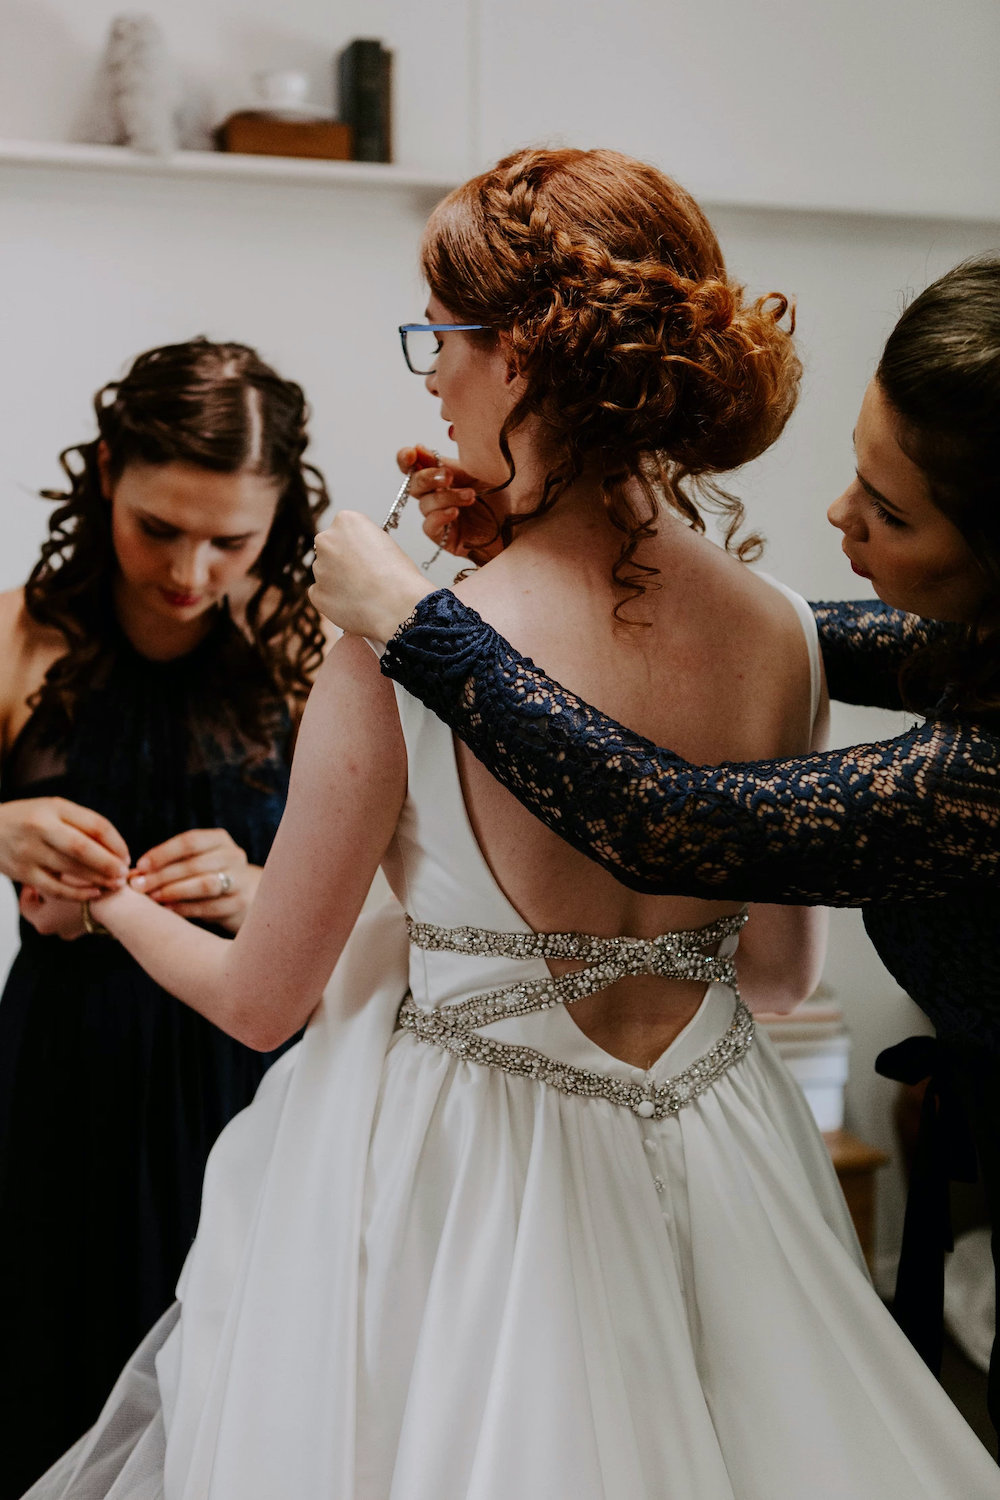 How to Choose Your Bridal Party Best Wedding Planning Tips Warrior Rose Events 4